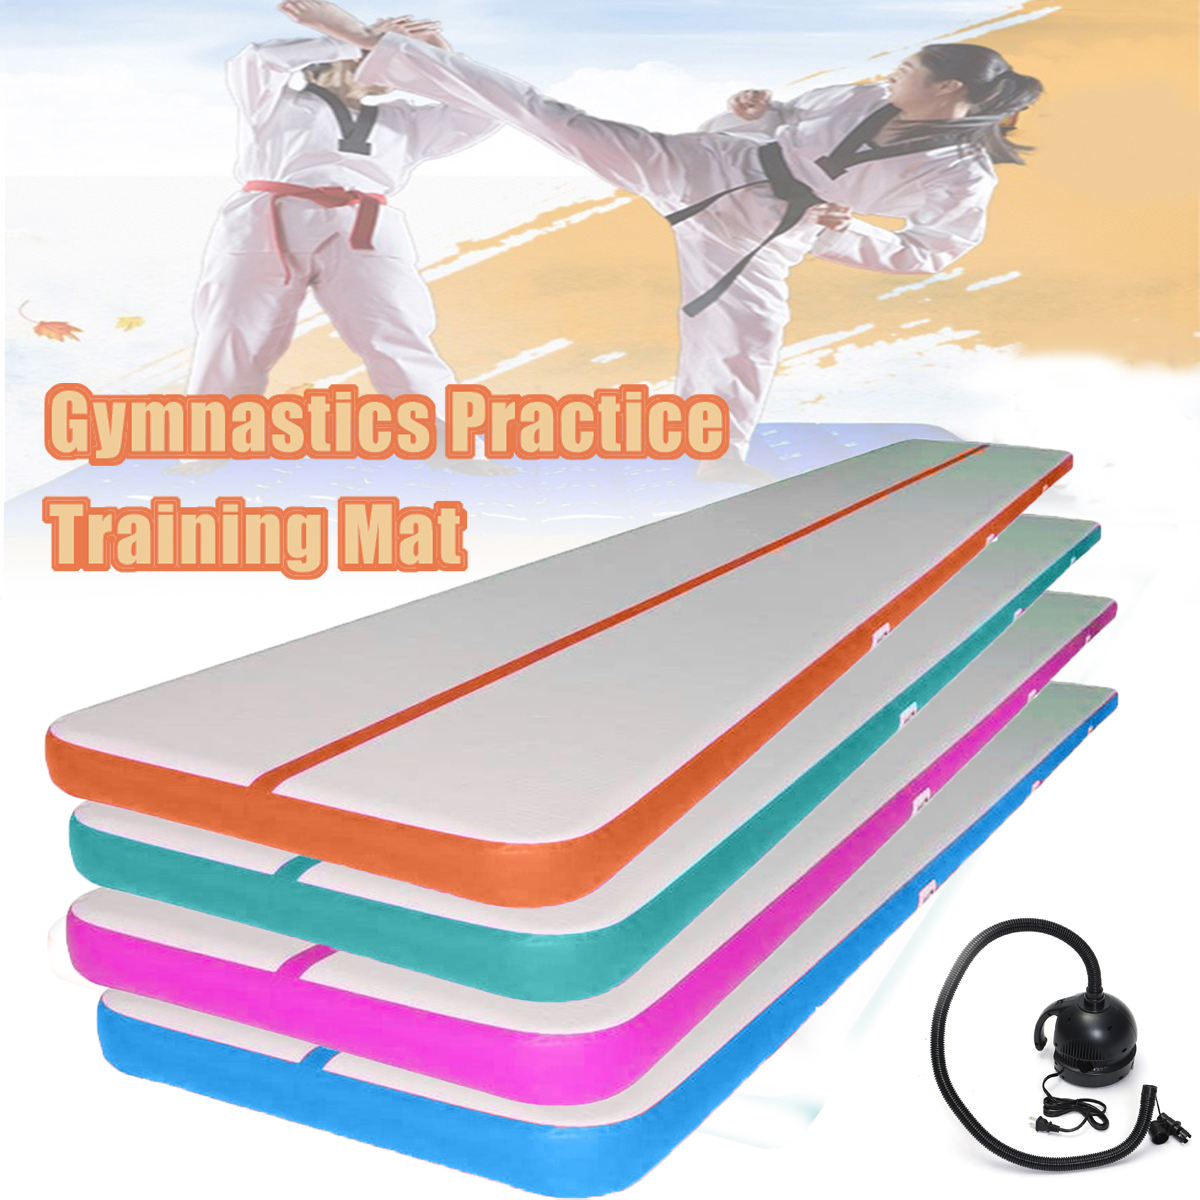 400x100x10 cm Piste Gonflable Gymnastique Tapis de Pratique Tumbling Formation Pad + 220 v Pompe À Air